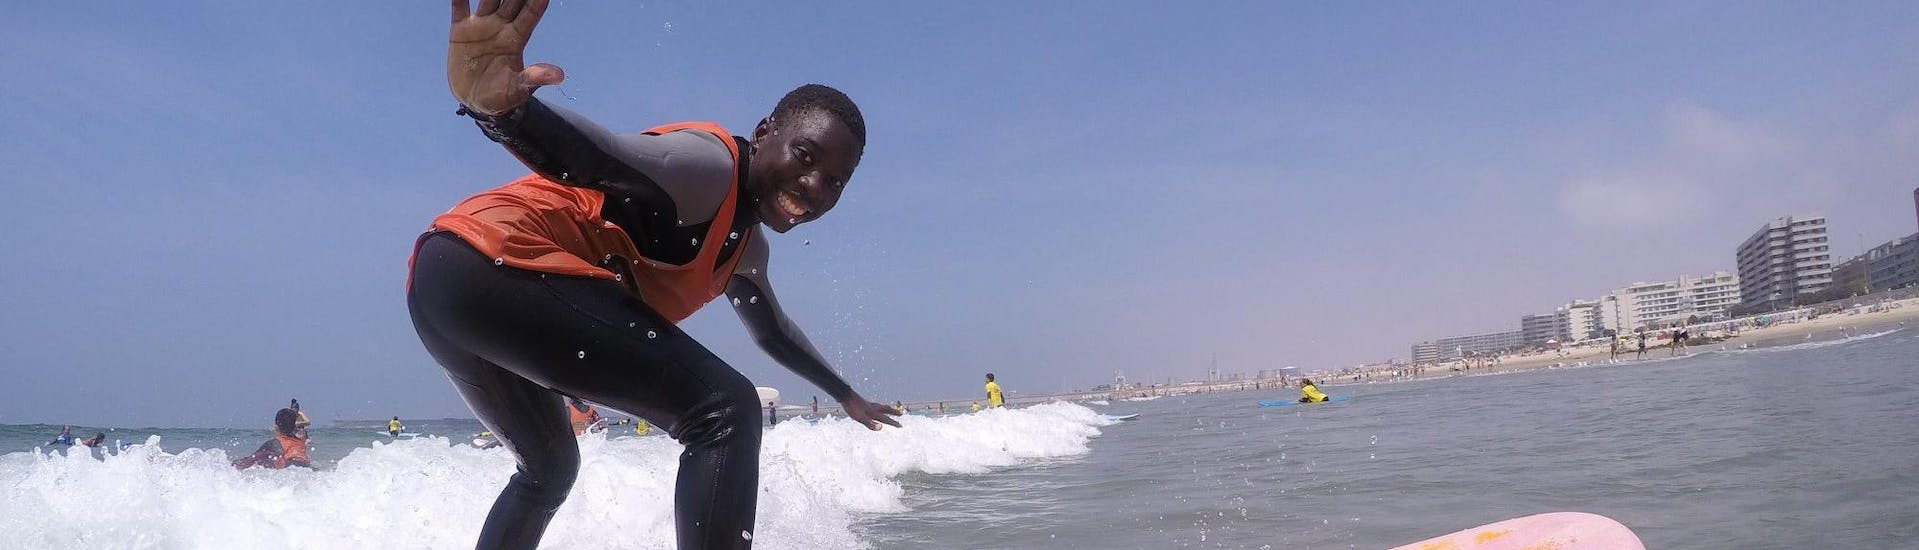 Under the guidance of a certified surf instructor from Surfaventura, a man is having fun whilst riding a big wave during the private surfing lessons on Matosinhos Beach.